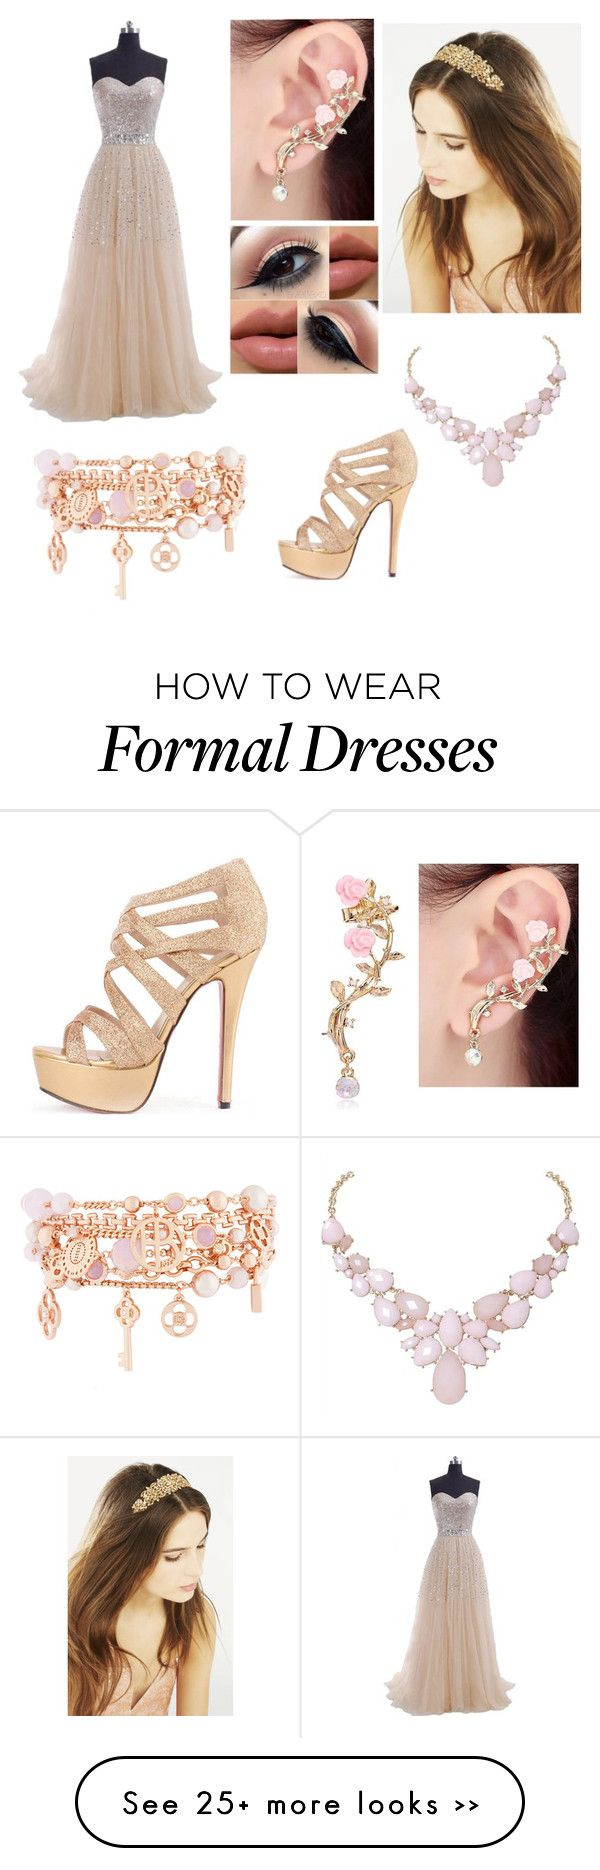 """""""Roupa formal"""" by sophia-cristina-1 on Polyvore"""